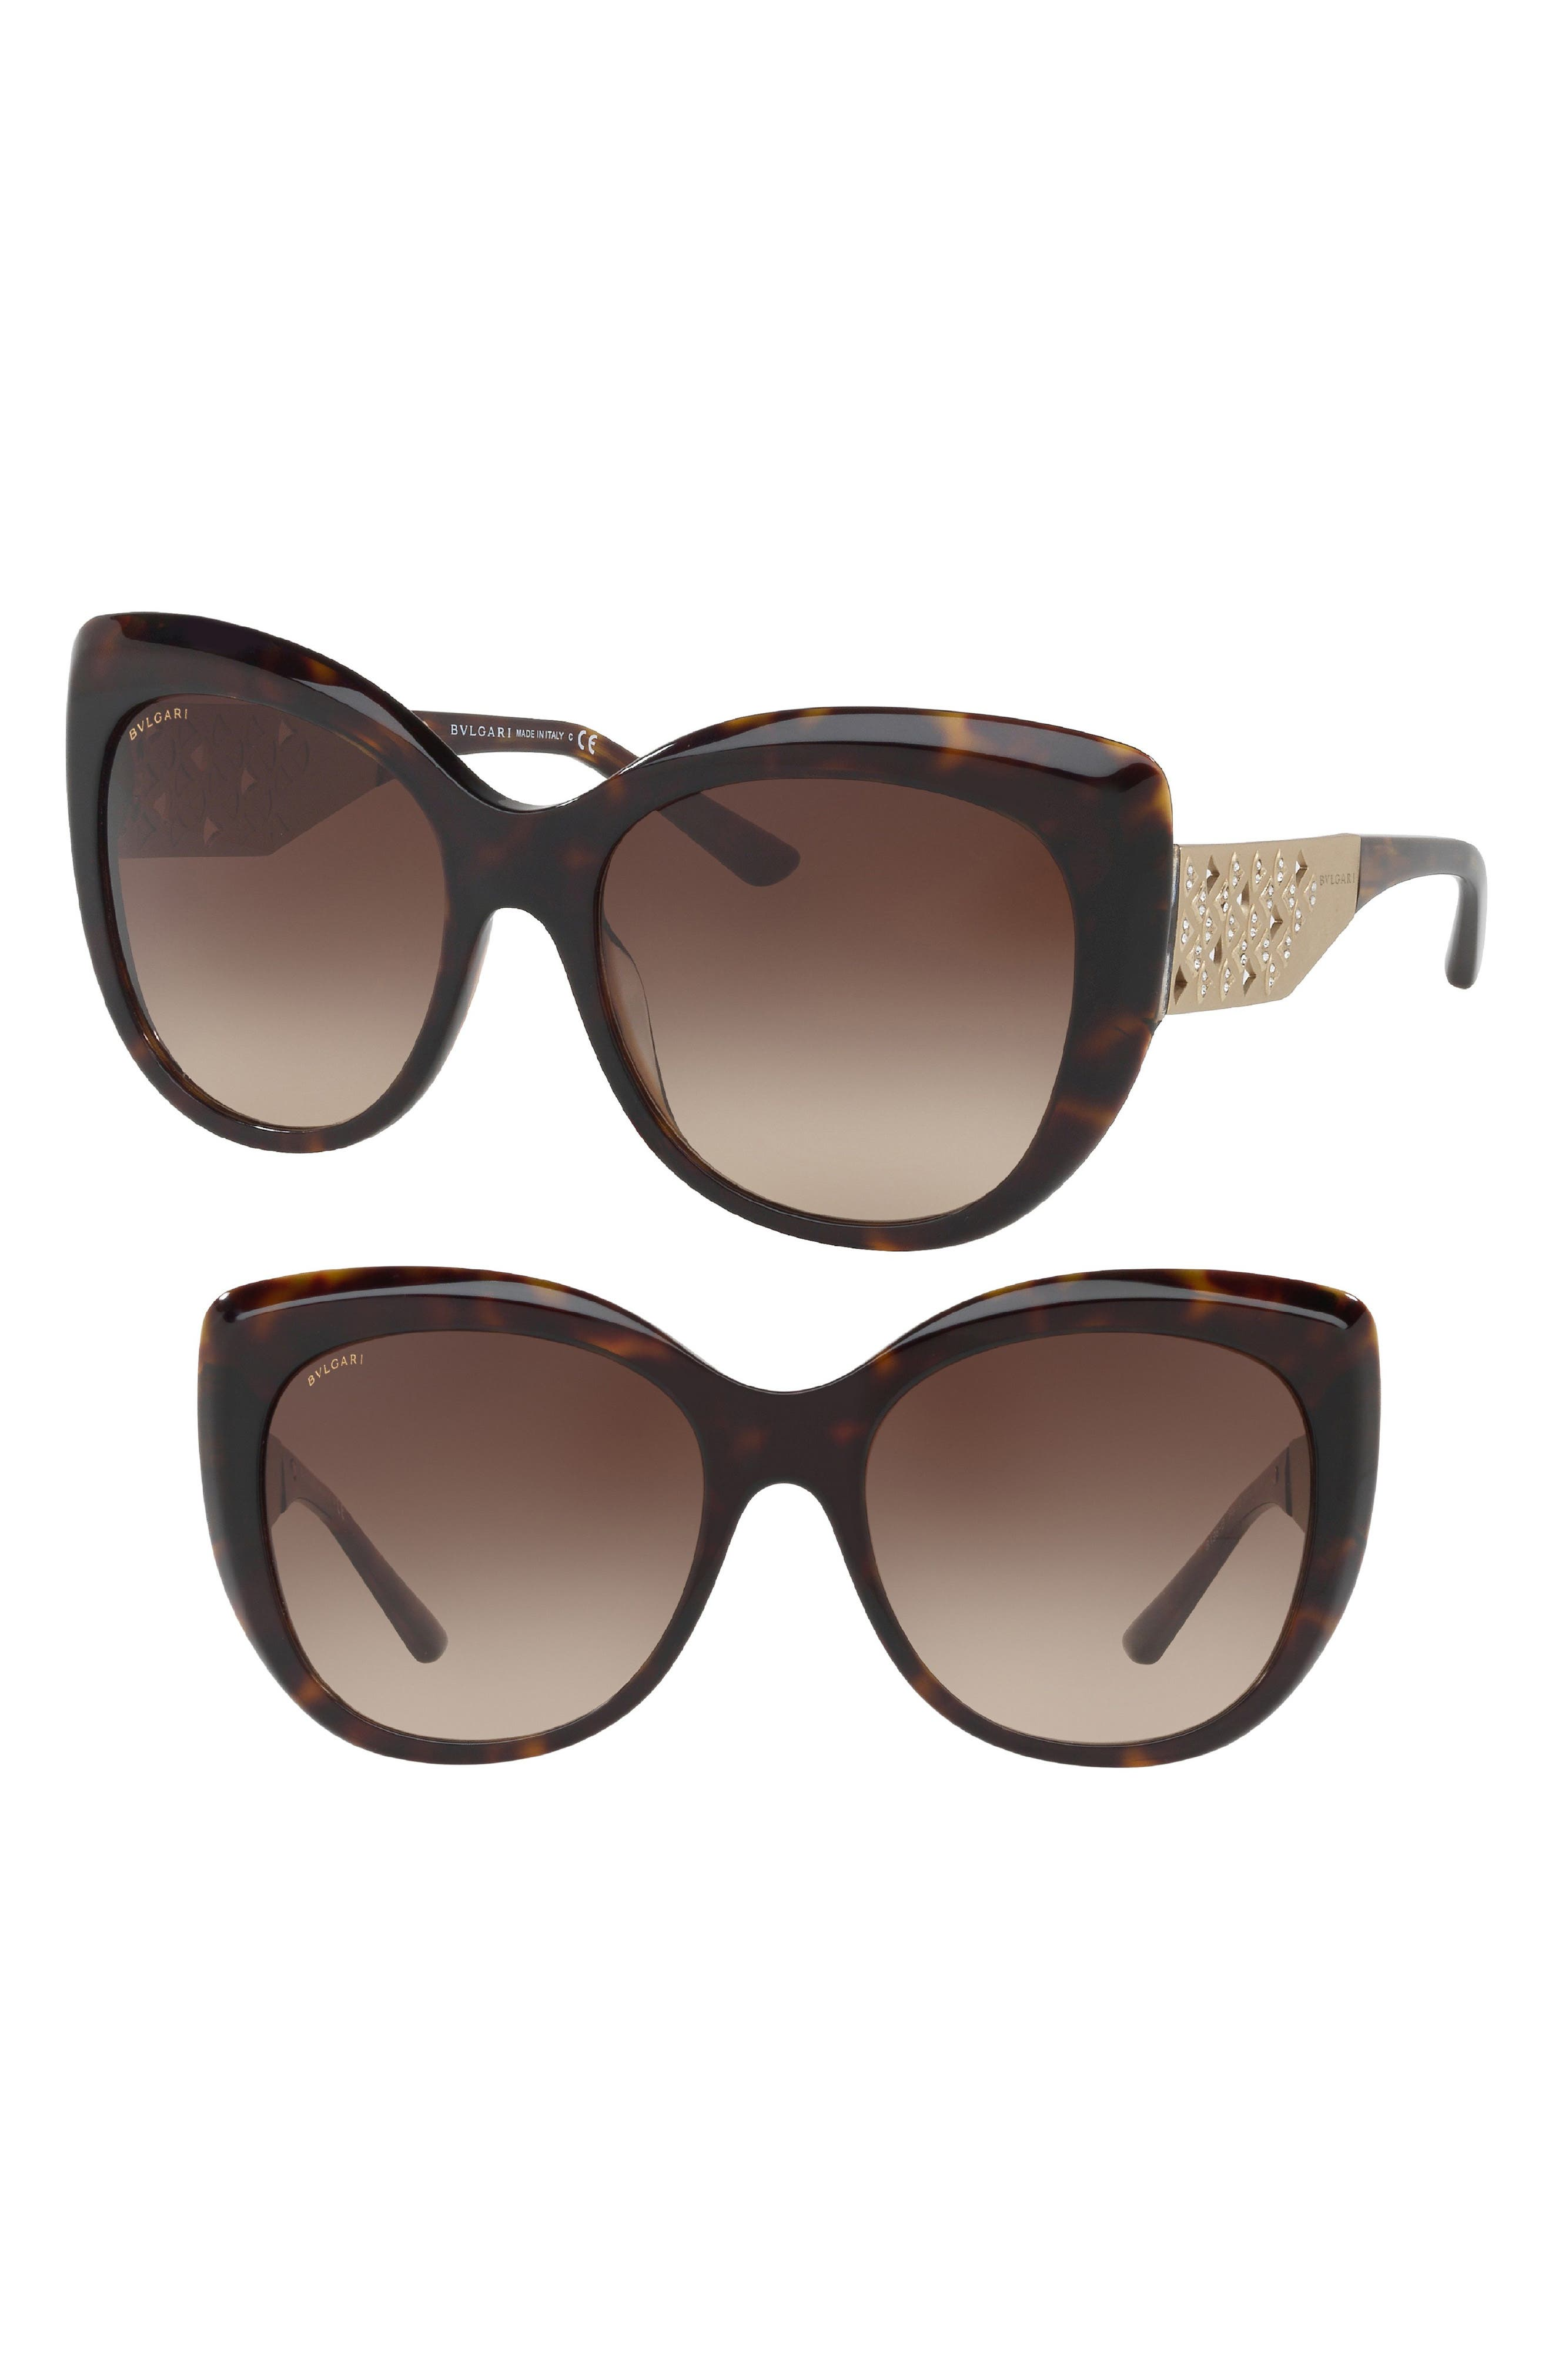 BVLGARI 57mm Cat Eye Gradient Lens Sunglasses